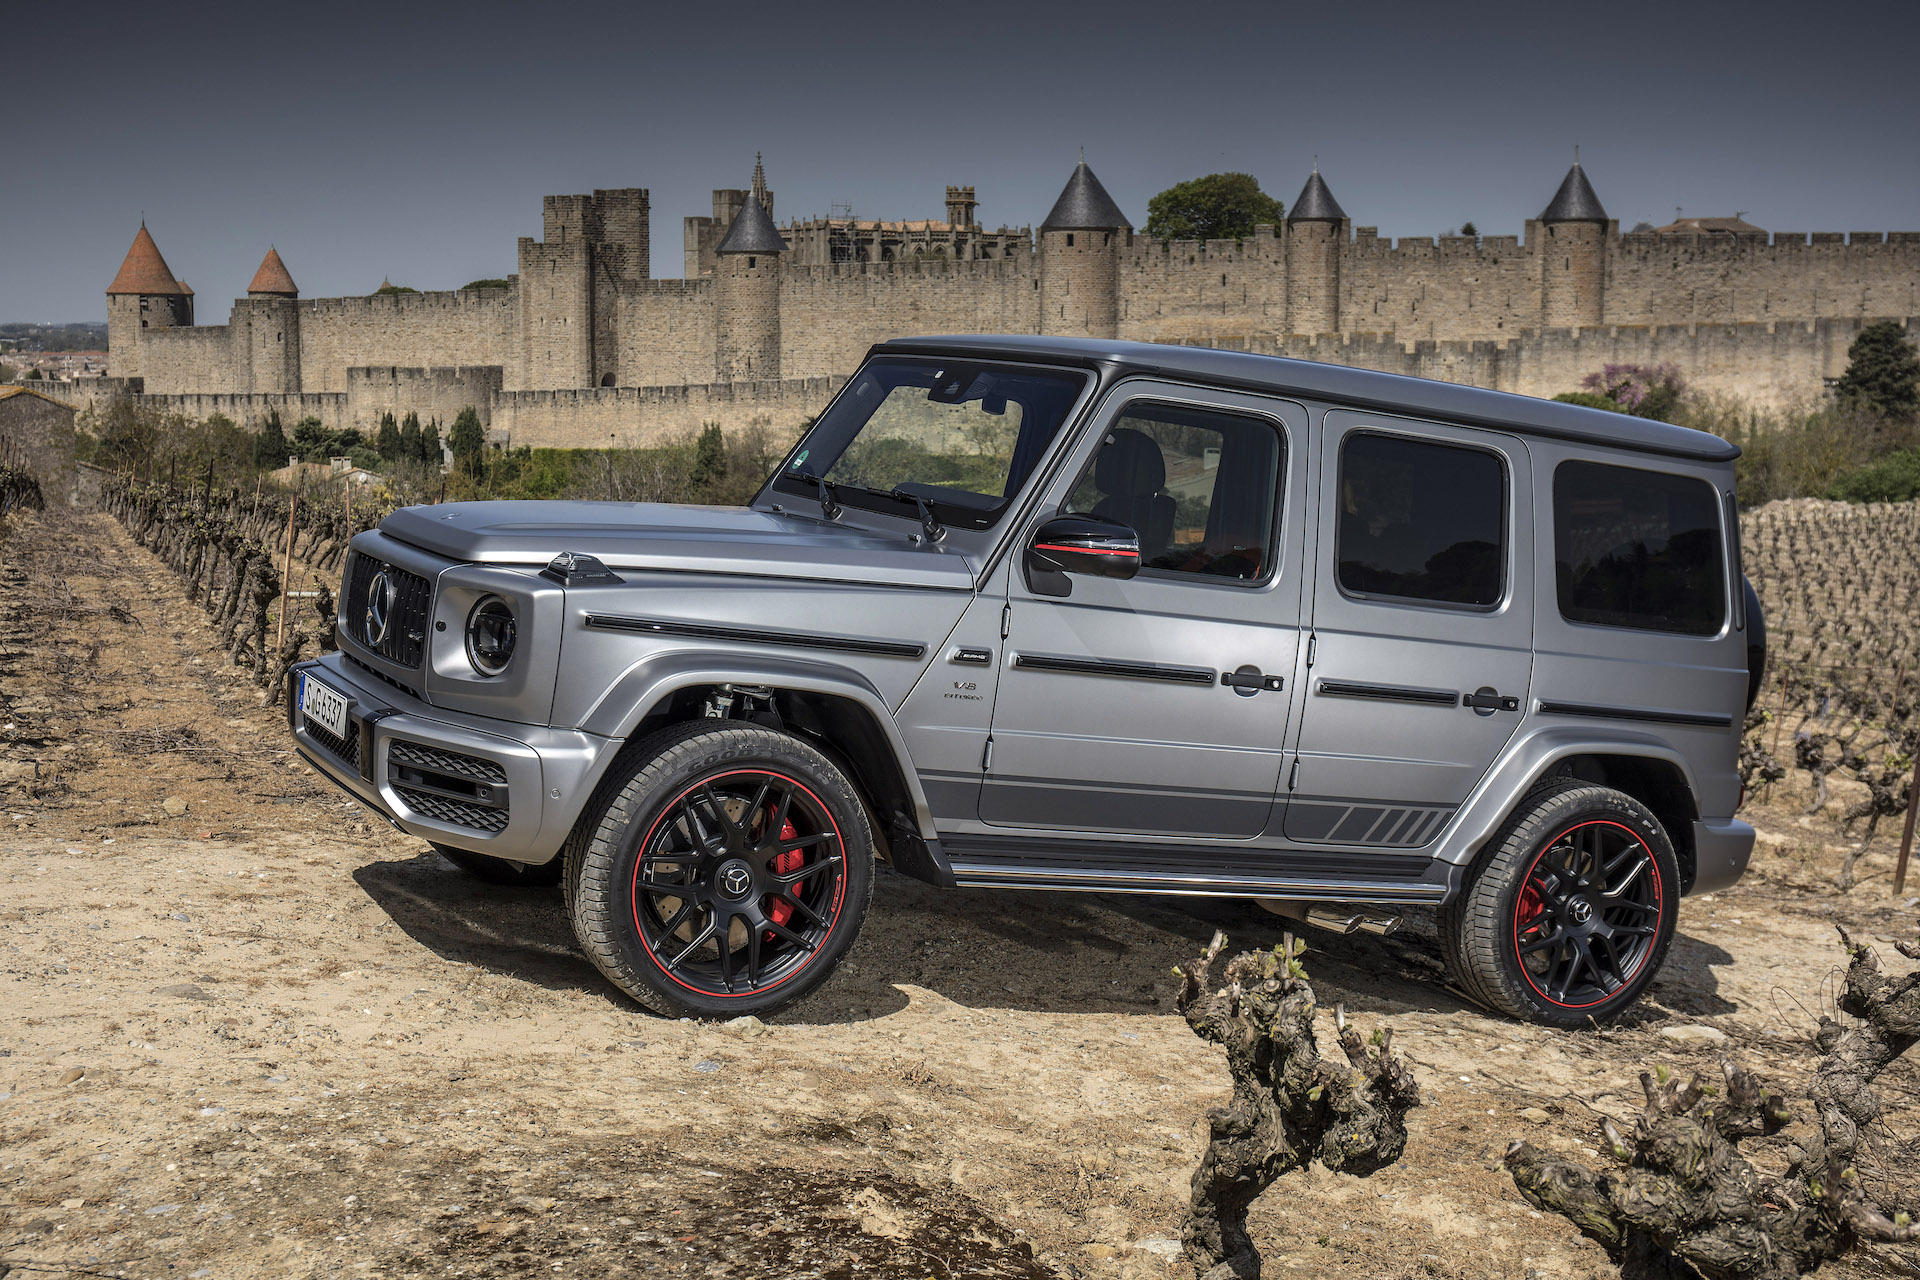 2019 Mercedes Benz G550 And Amg G63 First Drive Review Flying Bricks Off Road Tricks